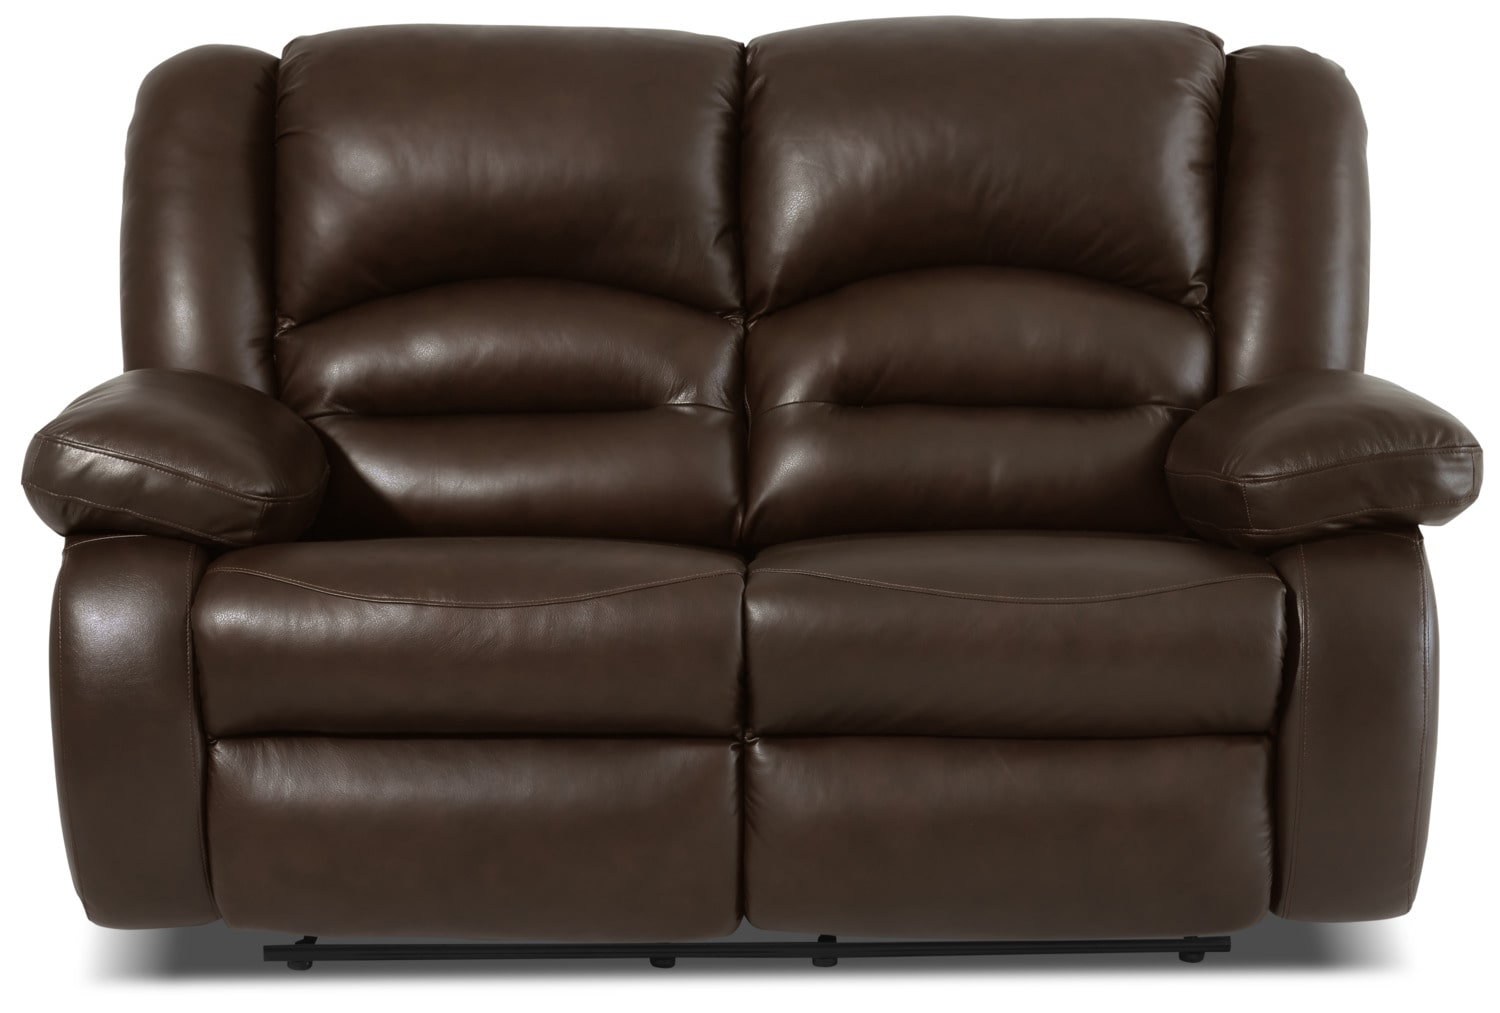 Toreno Genuine Leather Power Reclining Loveseat – Brown